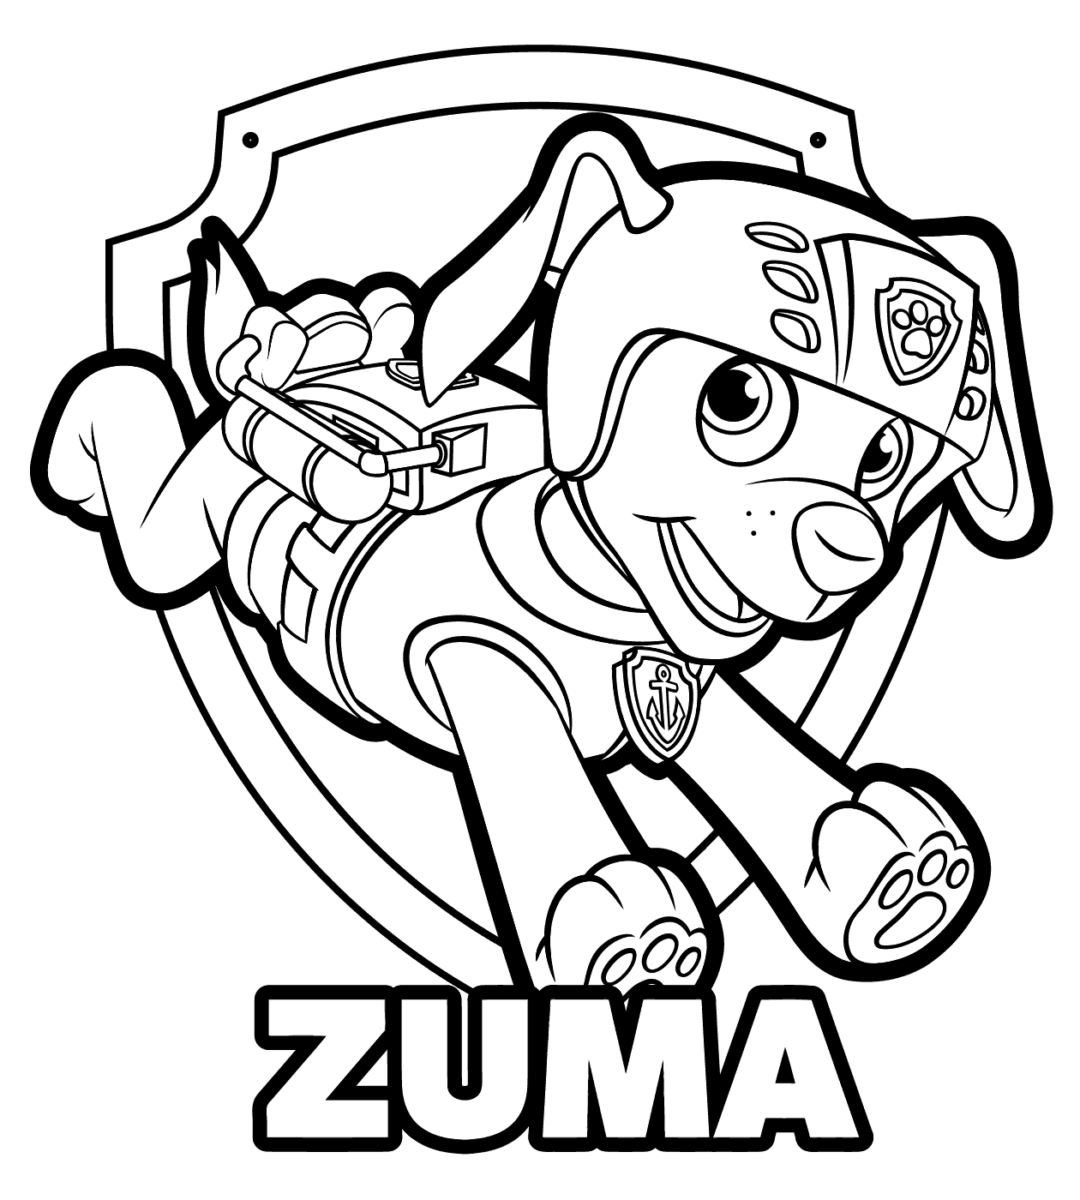 Paw Patrol Coloring Pages Paw Patrol Coloring Pages Paw Patrol